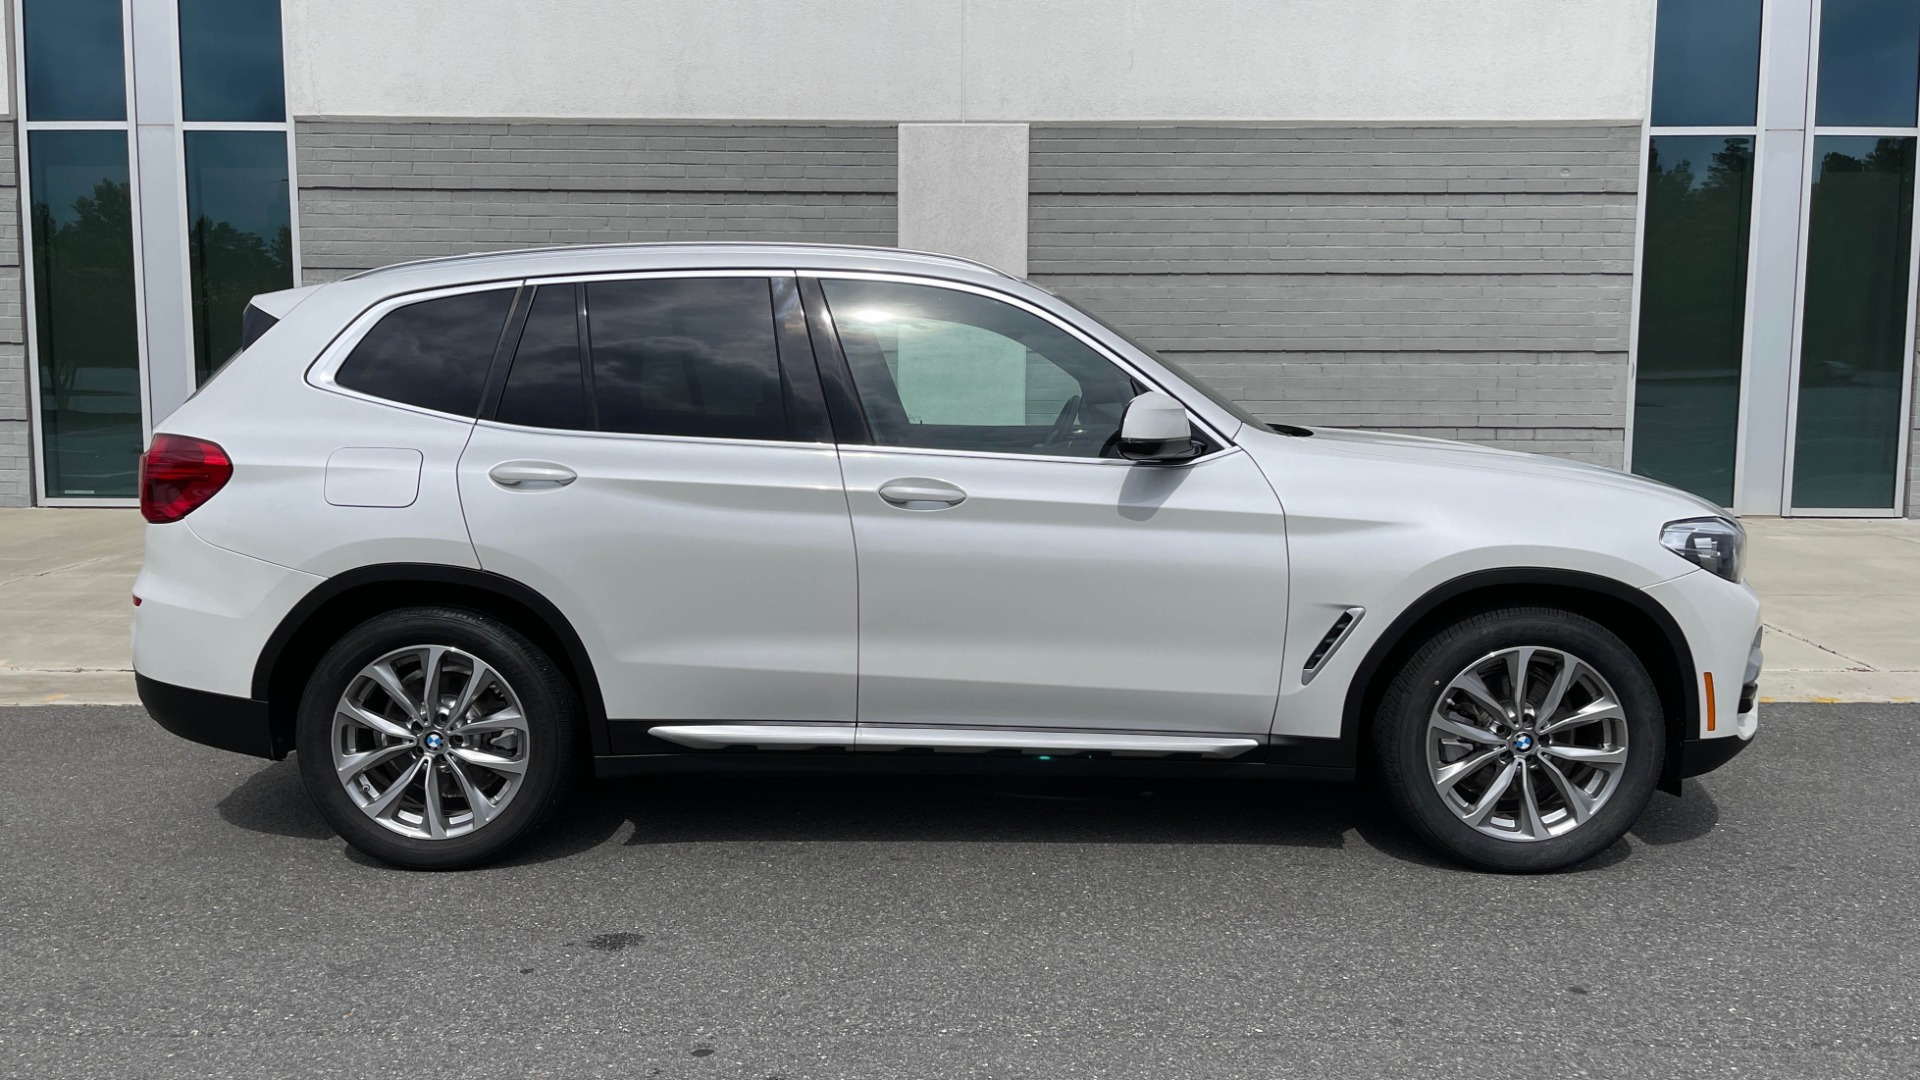 Used 2018 BMW X3 XDRIVE30I / NAV / PANO-ROOF / HTD STS / PARK DIST CNTRL / REARVIEW for sale $38,995 at Formula Imports in Charlotte NC 28227 6